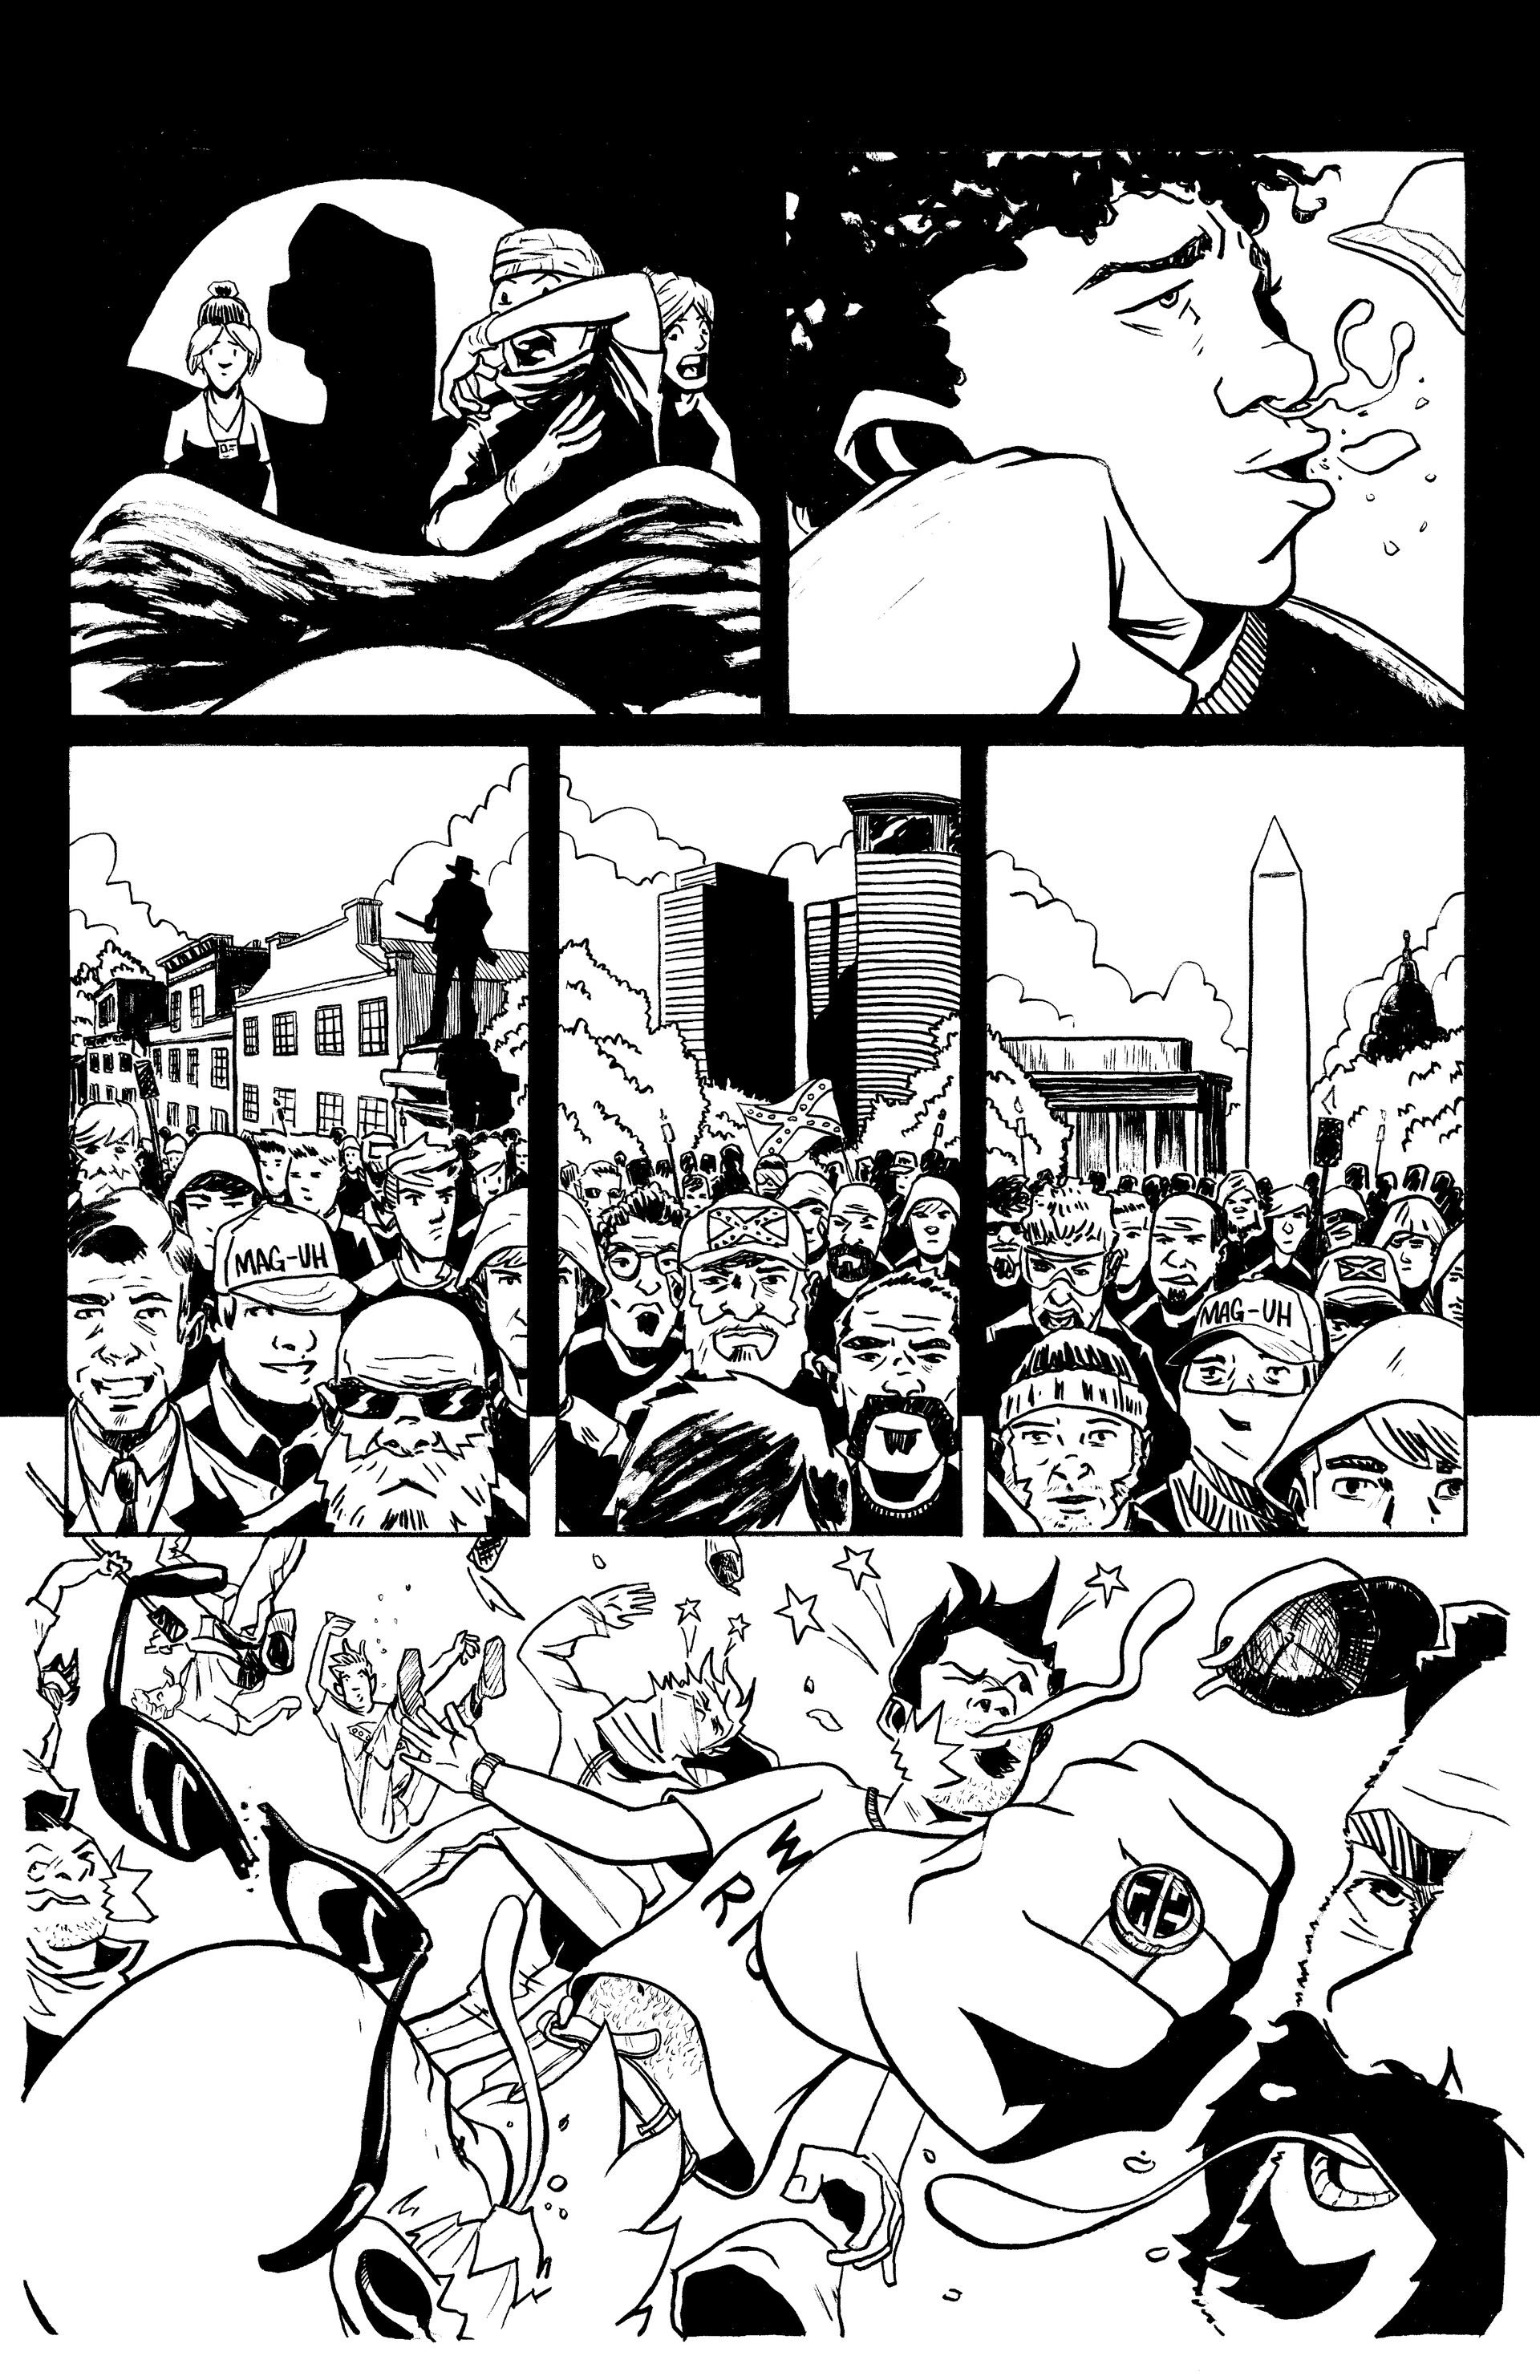 Randy haldeman neverendingpunch final inks